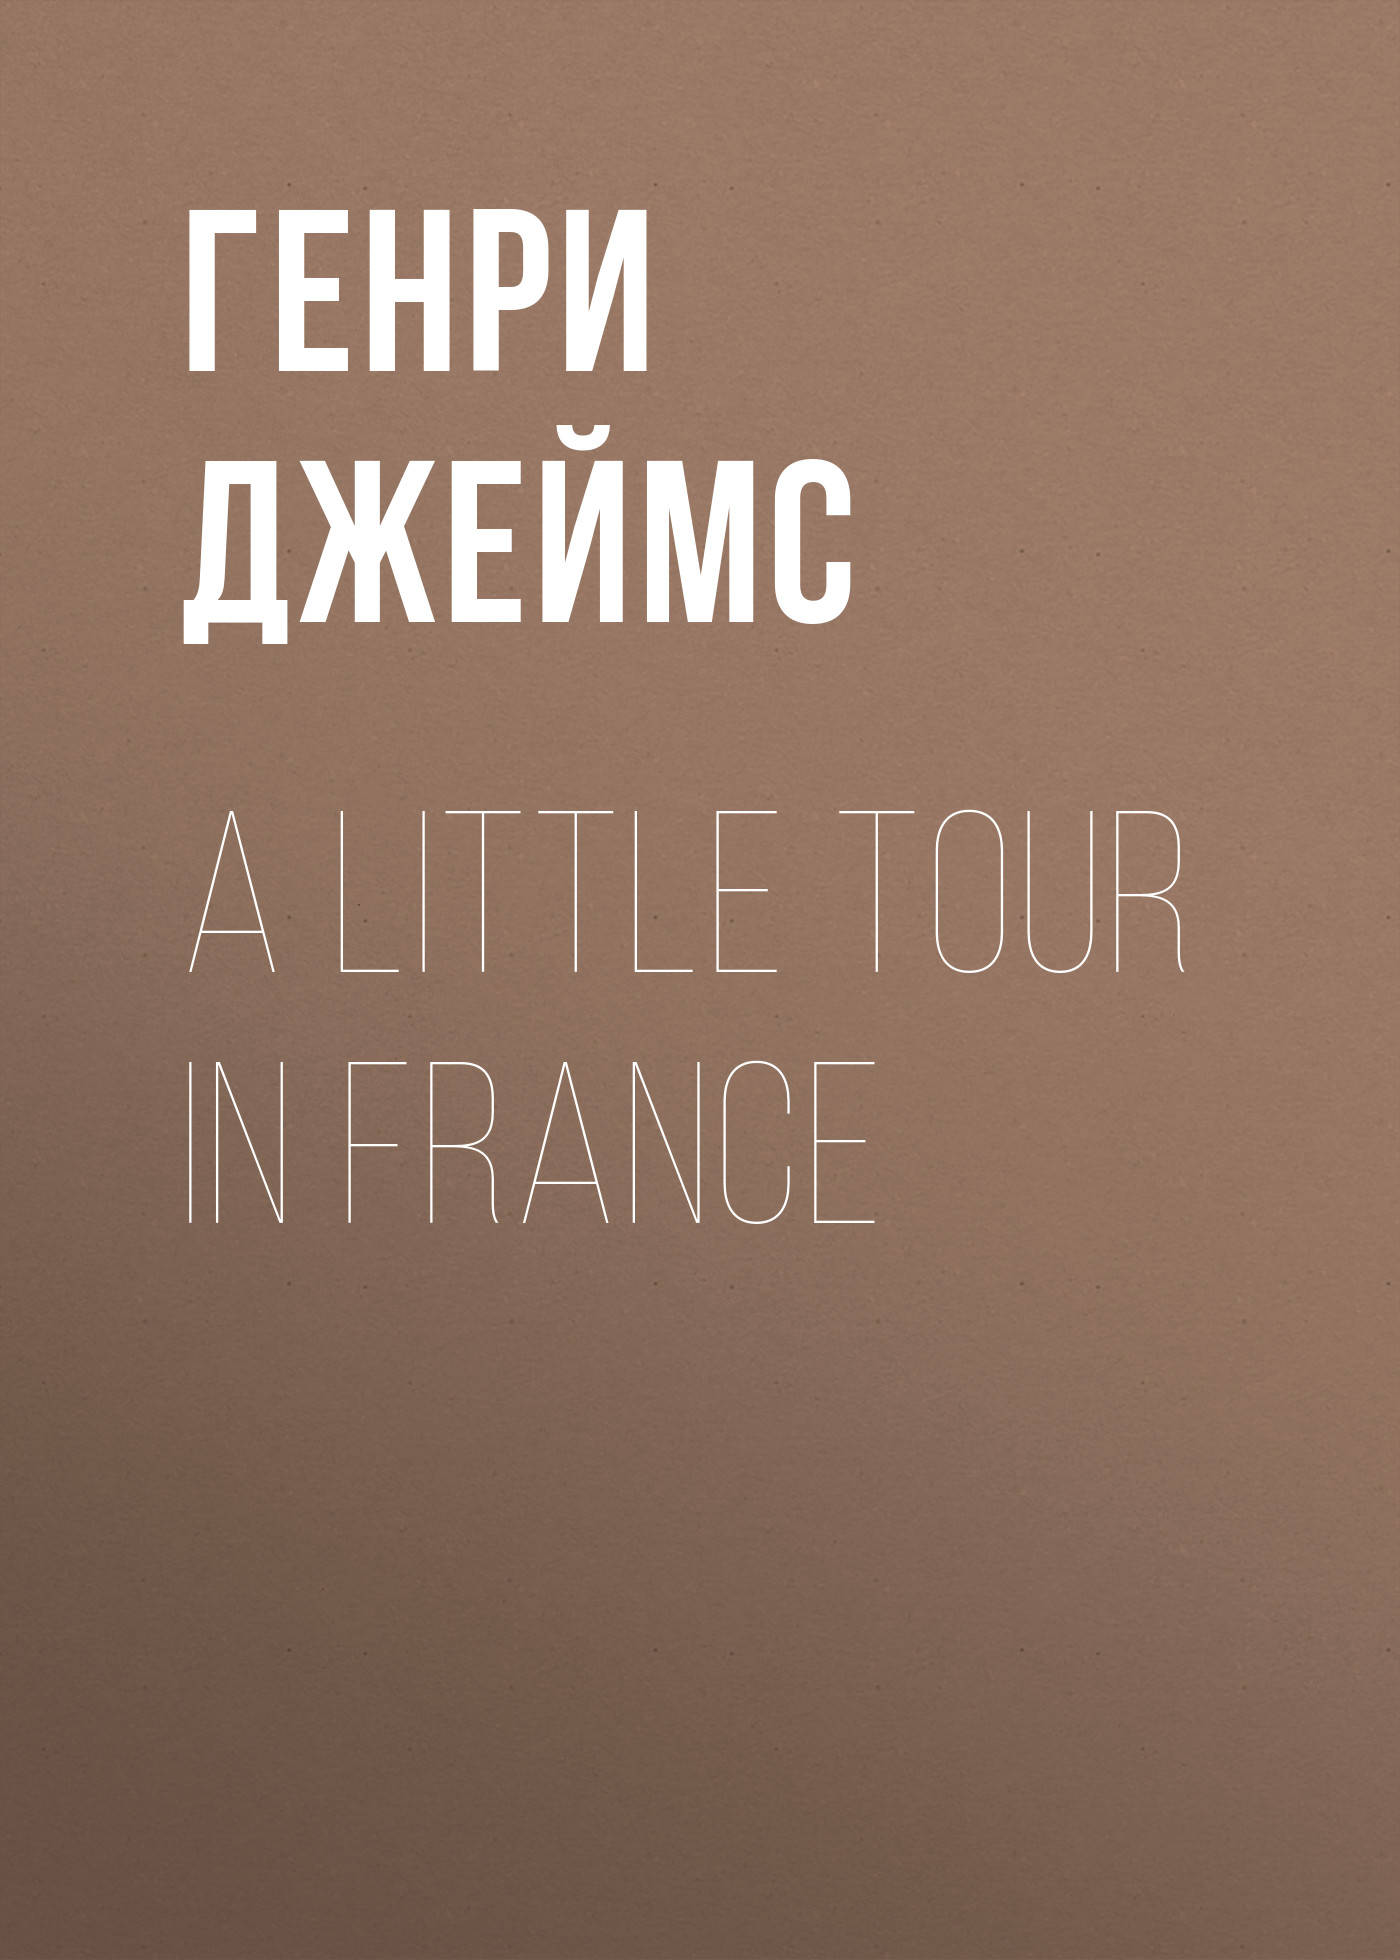 Генри Джеймс A Little Tour in France монитор 22 iiyama pro lite t2236msc b2